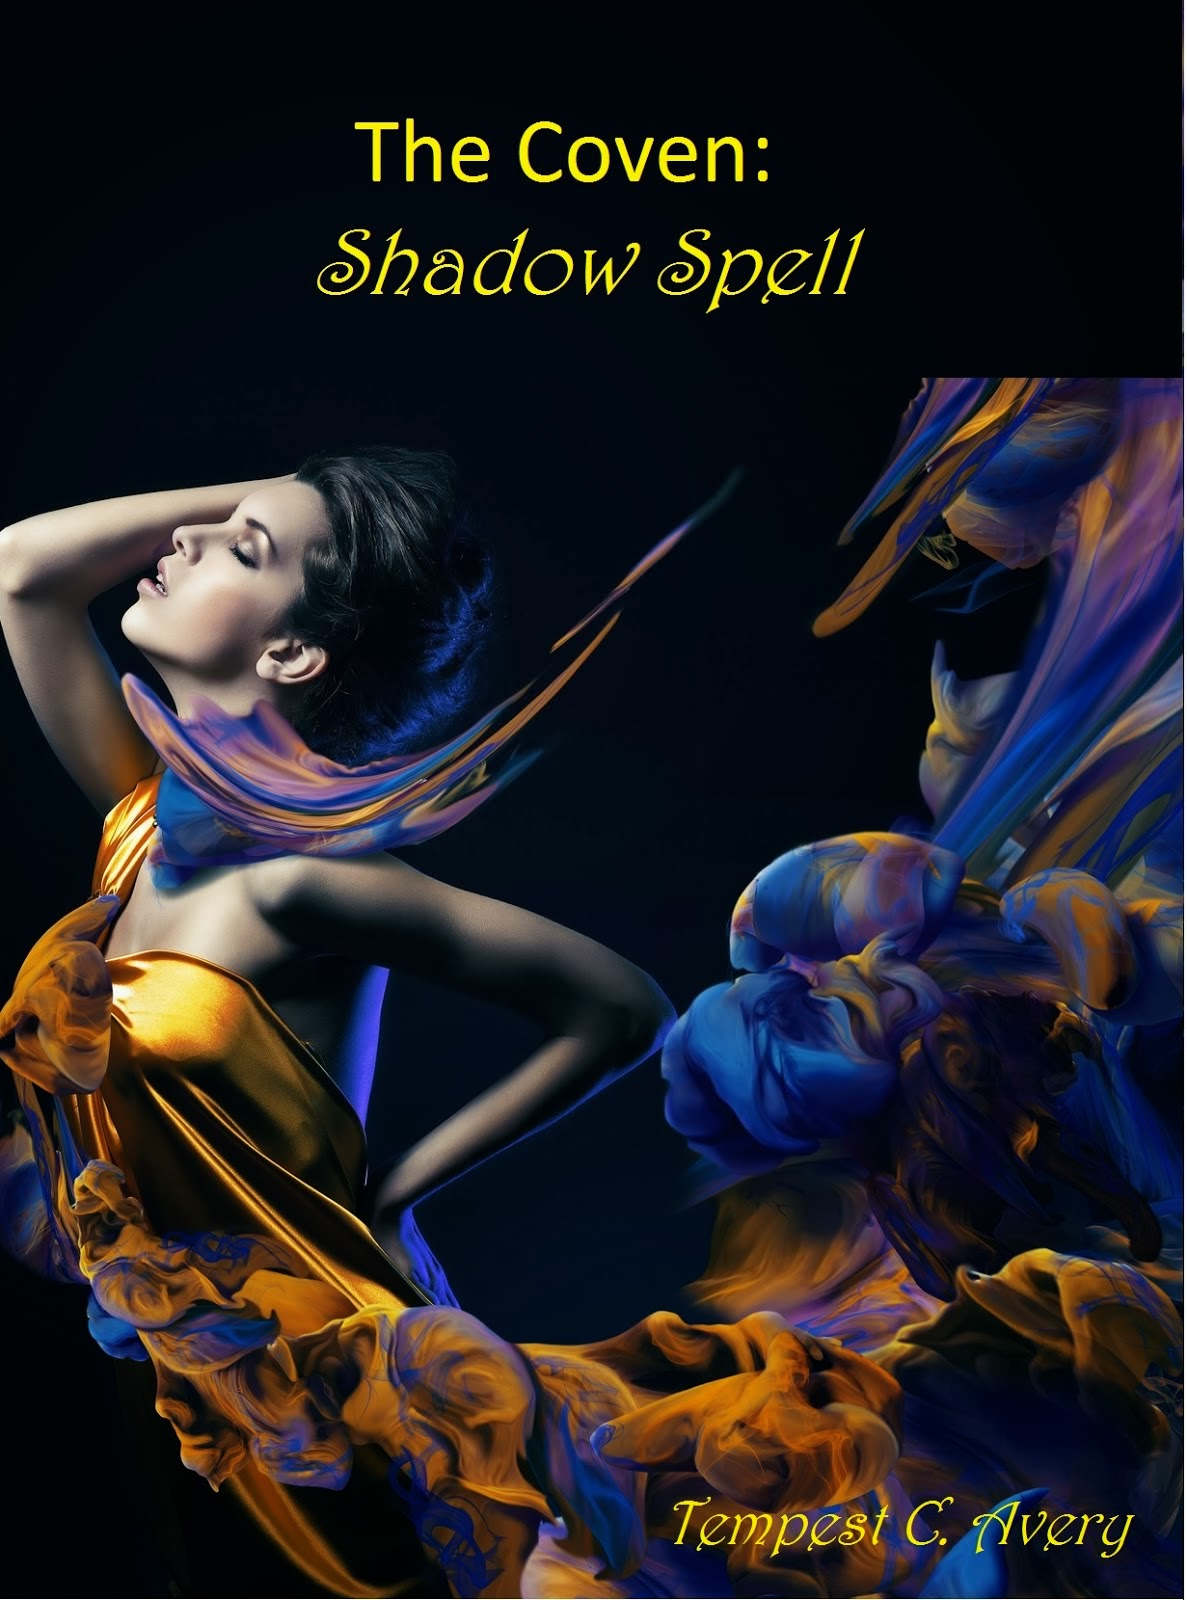 The Coven: Shadow Spell